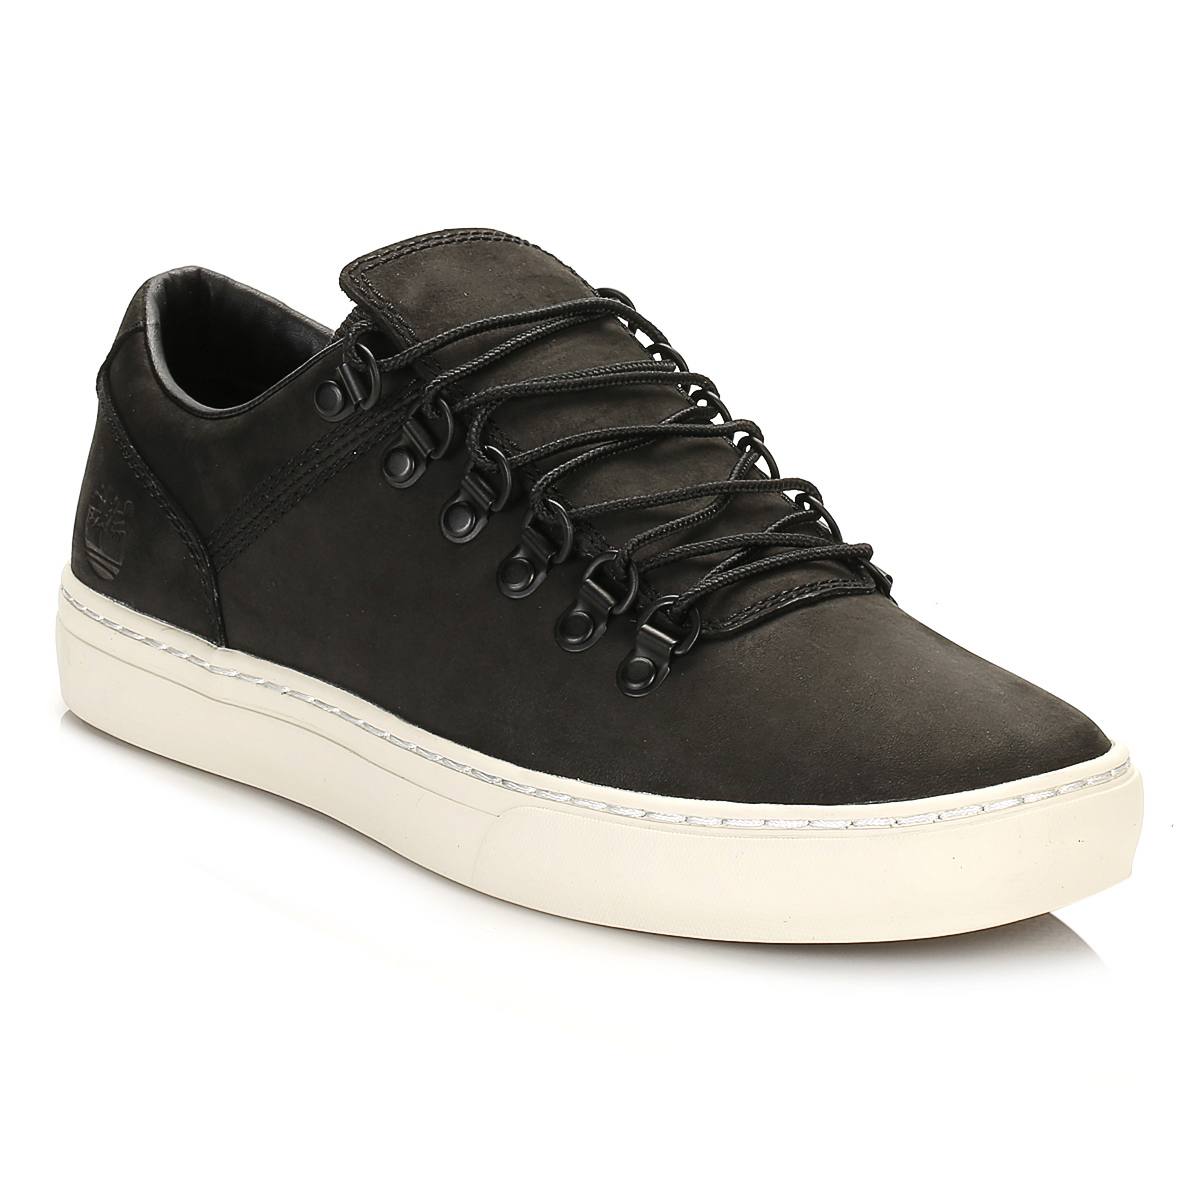 3d3f6698fd31d6 Details about Timberland Mens Black Adventure 2.0 Cupsole Alpine Ox  Trainers Nubuck Shoes